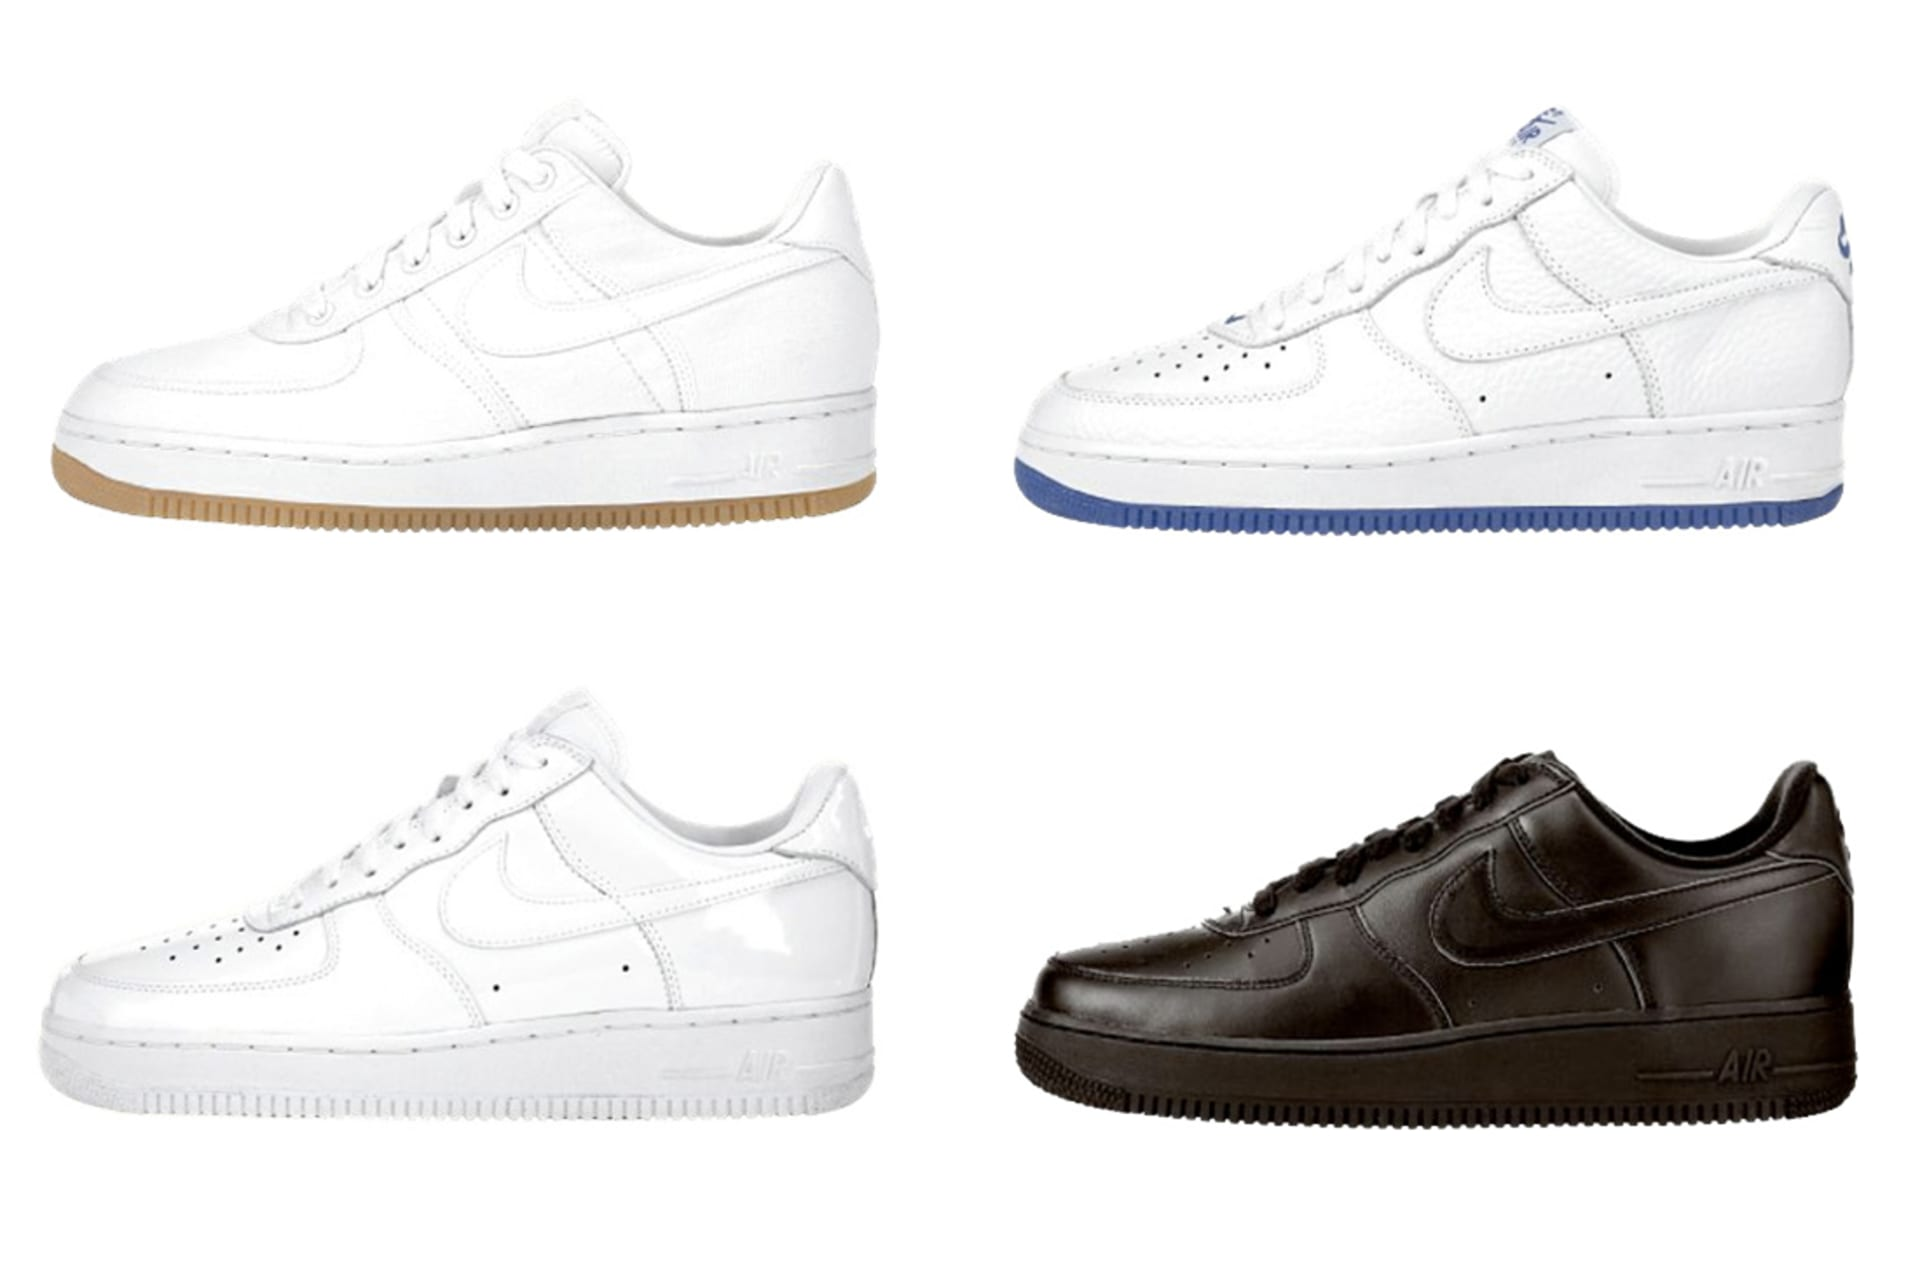 new arrival fdbbb b1bc0 1996 Nike Air Force 1